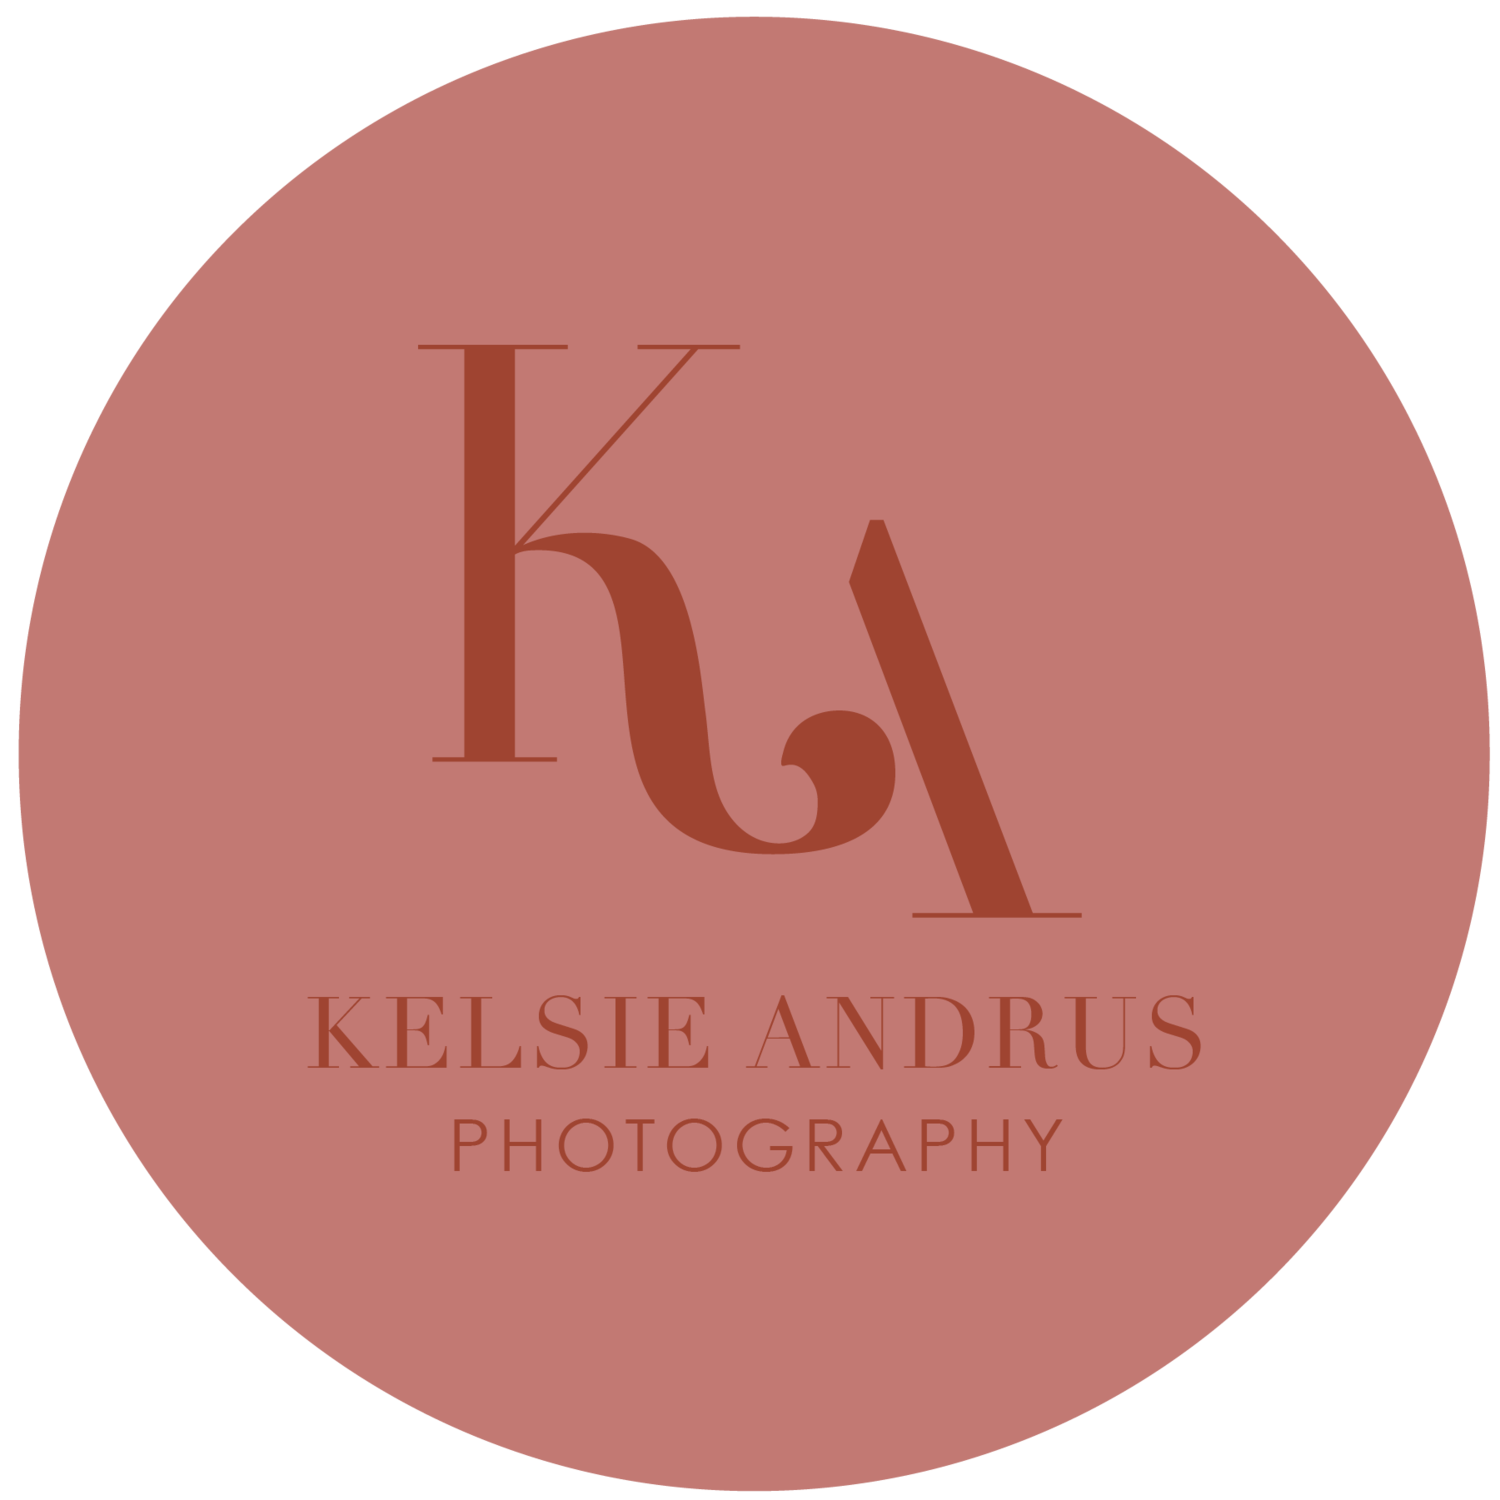 kelsie andrus photography